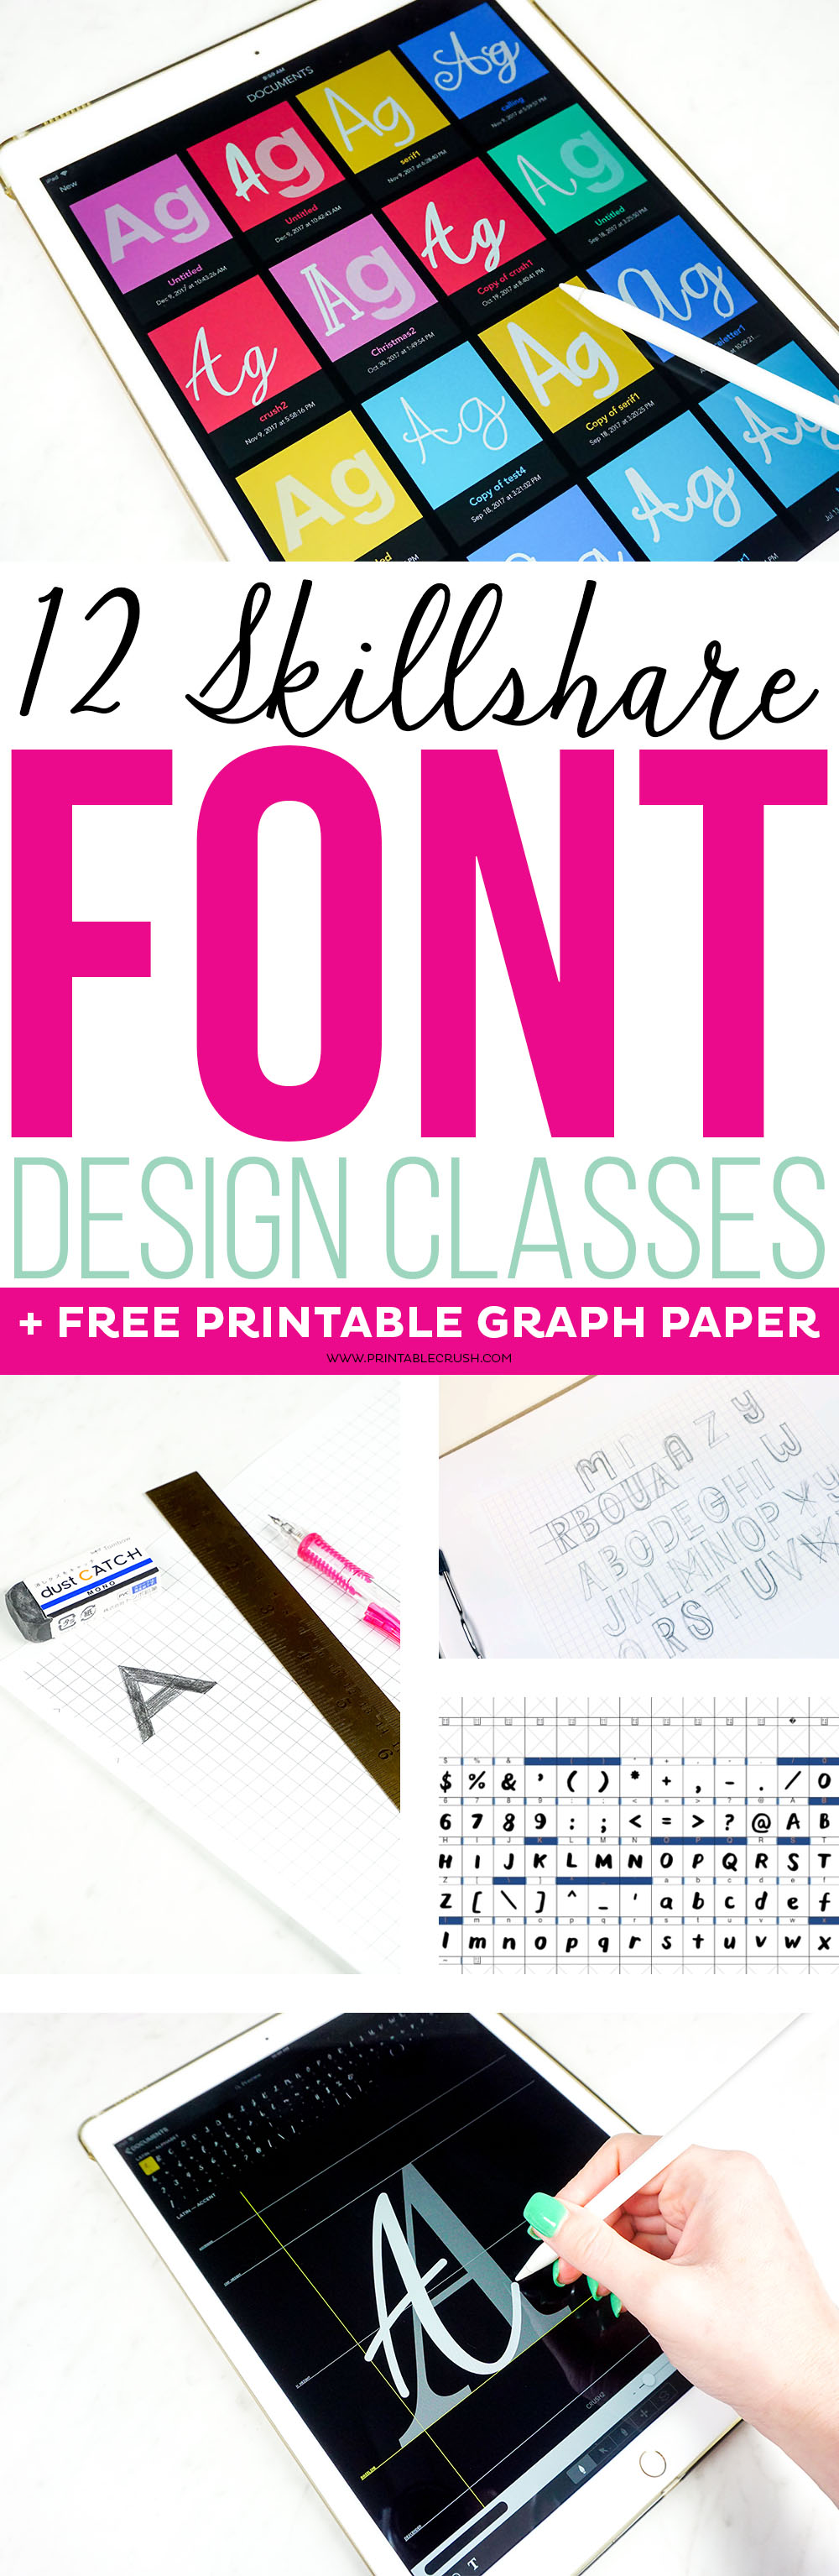 Whether you want to create fonts for personal use or for profit, check out these 12 Skillshare Font Design Classes to learn the basics of typography and font creation.